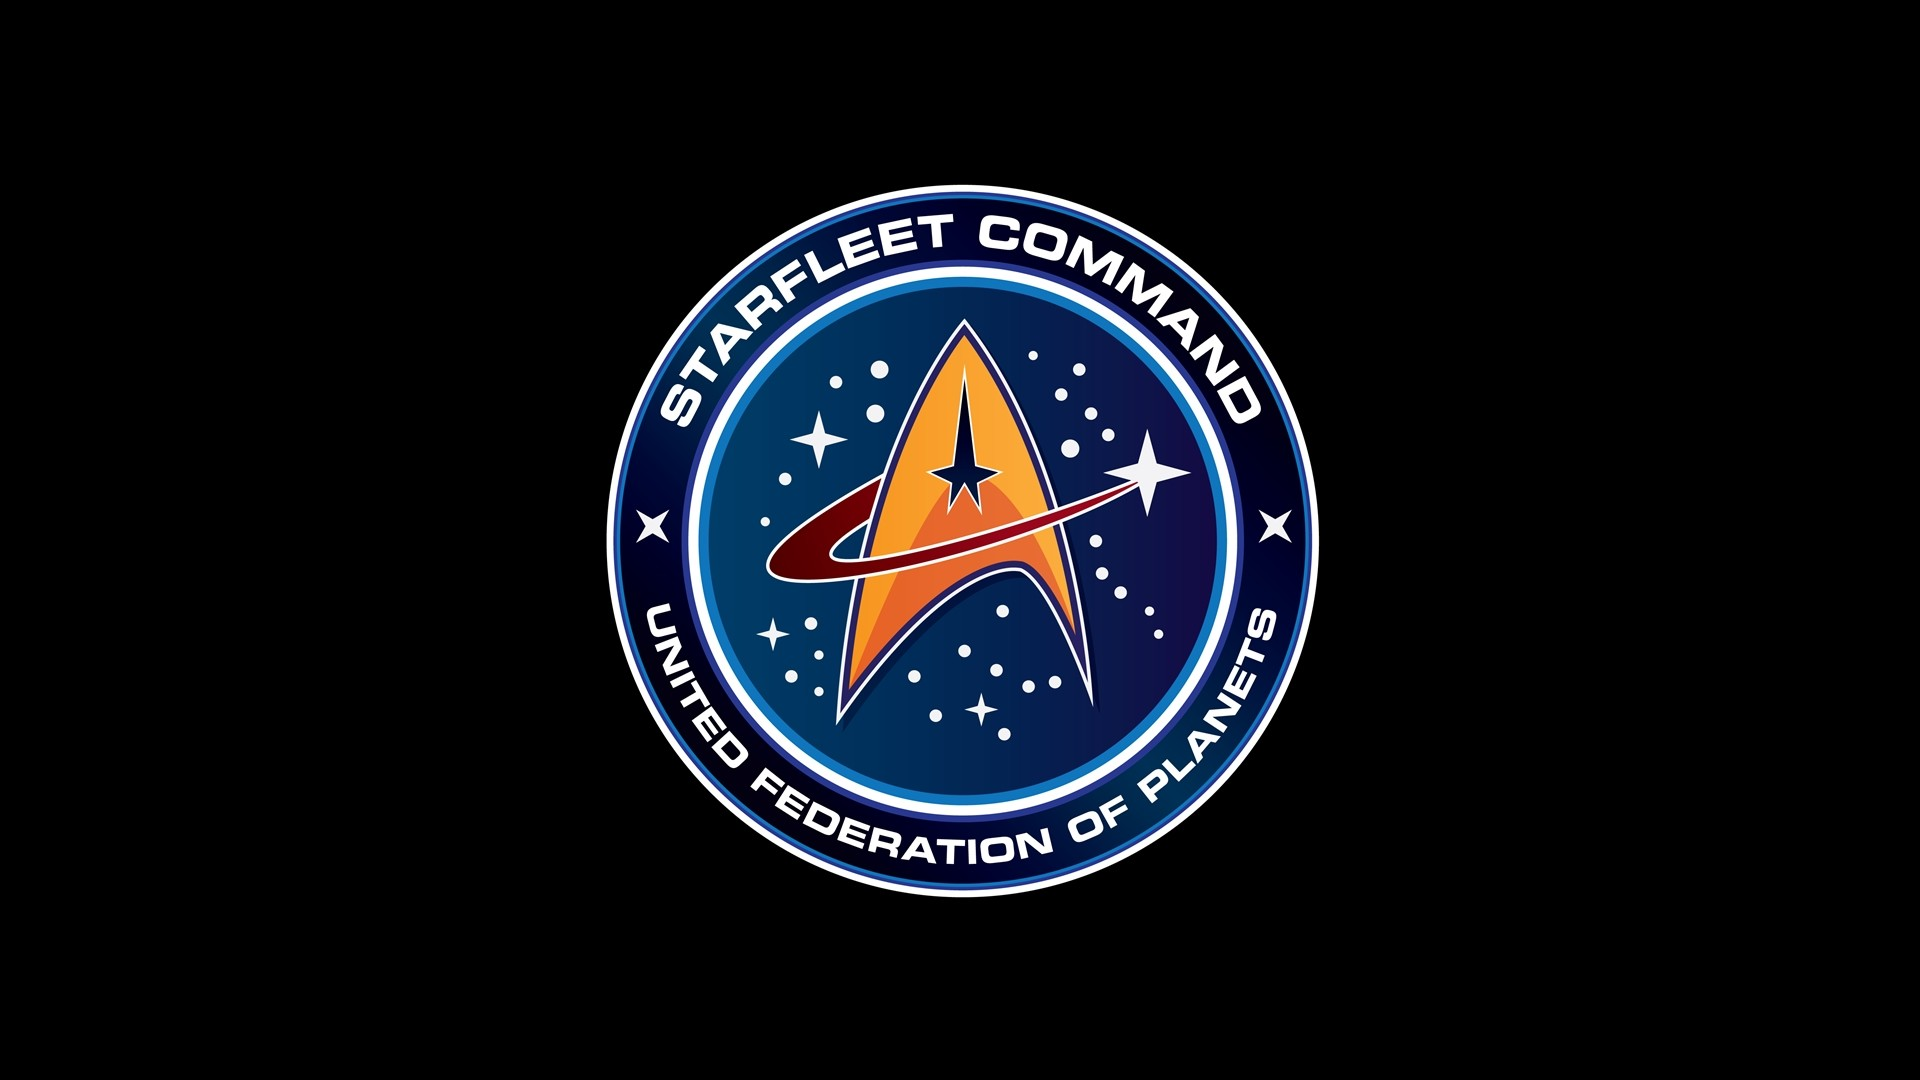 Res: 1920x1080, Starfleet Command by Aldaron87 Starfleet Command by Aldaron87